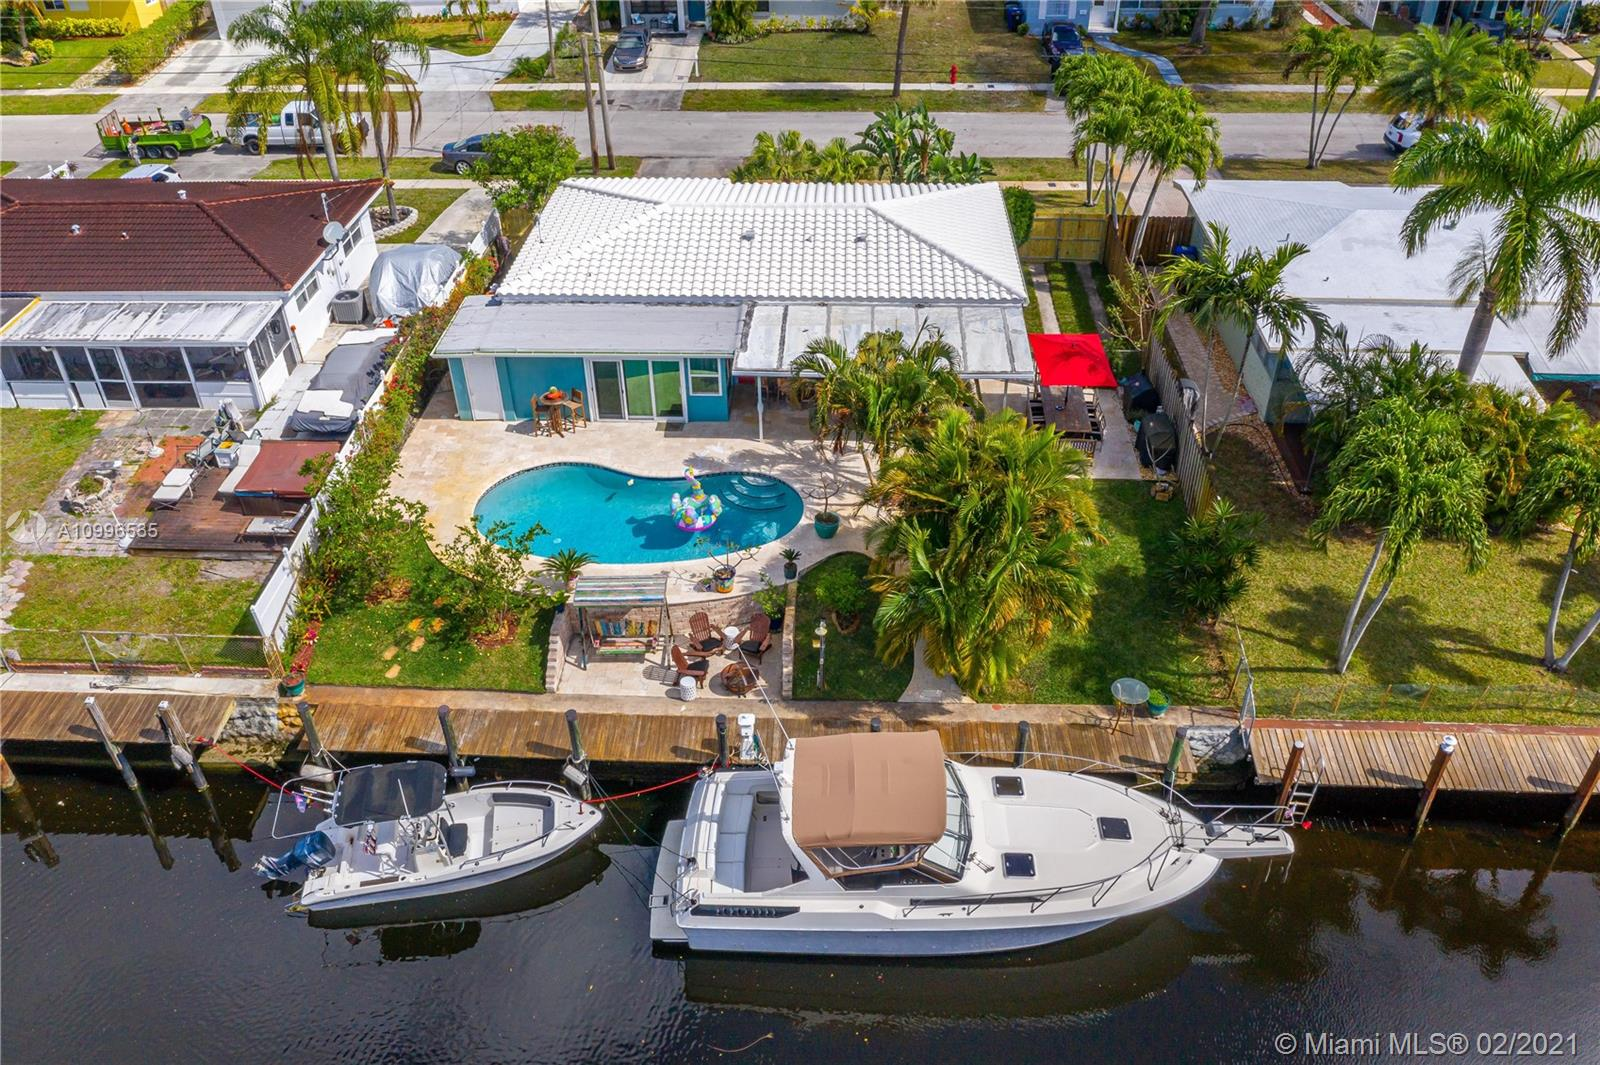 Gorgeous home with 70 feet of waterfront on canal opening to the New River, Deep water, NO FIXED BRIDGES to Ocean. Massive upgrades! Showcases a bright, open concept GREAT ROOM & KITCHEN!  Features a split bedroom plan with a huge primary bedroom and custom closets. Relaxing FLORIDA ROOM/poss 3rdBR. Large laundry room, w/deep washtub, & cabinetry. New Ceramic barrel style Roof and Impact windows, wood look ceramic tile floors, Plantation shutters, and A/C.